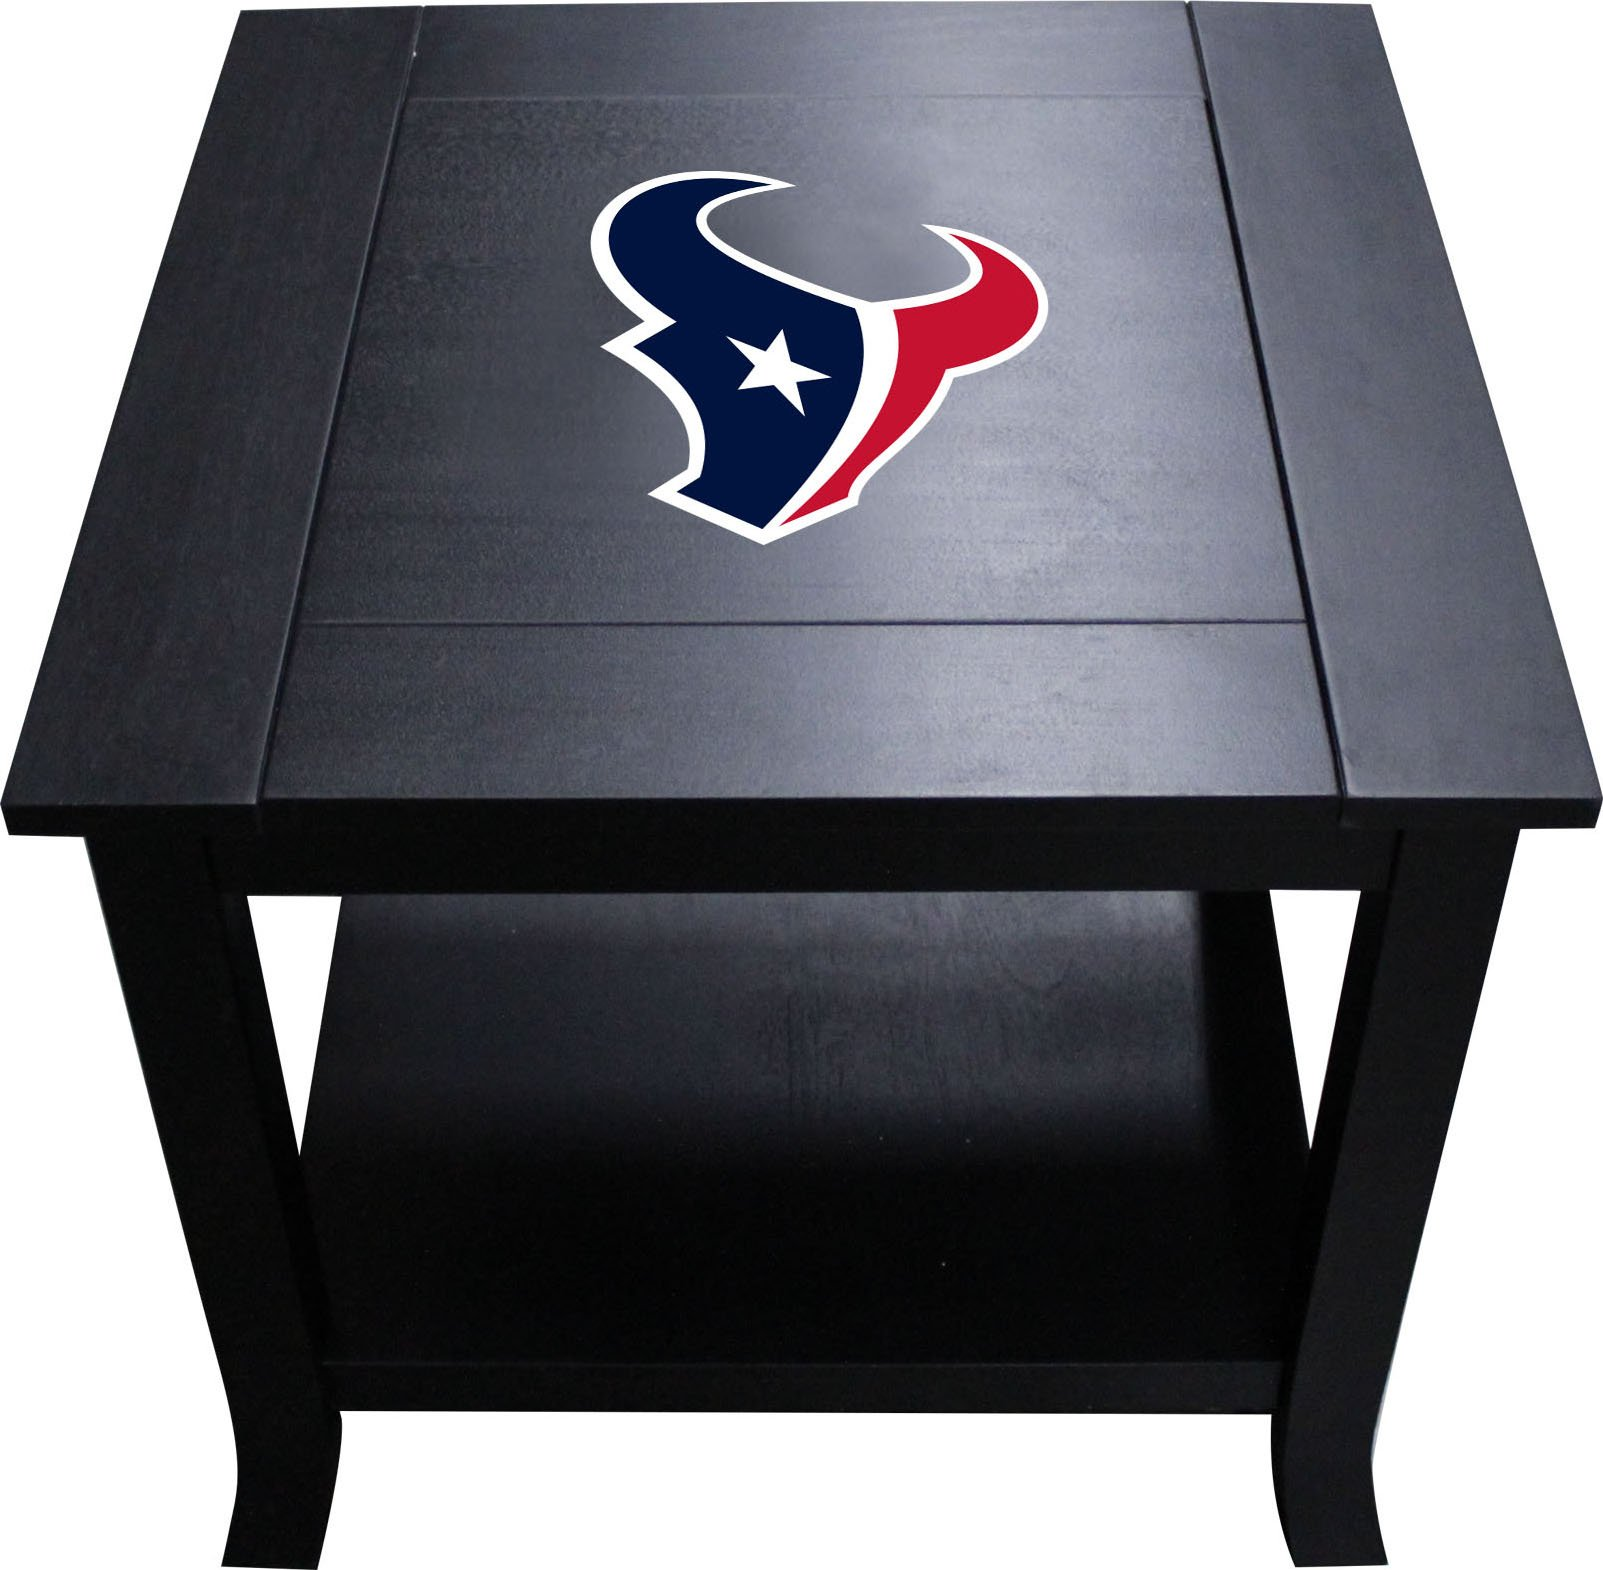 Imperial Officially Licensed NFL Furniture: Hardwood Side/End Table, Houston Texans